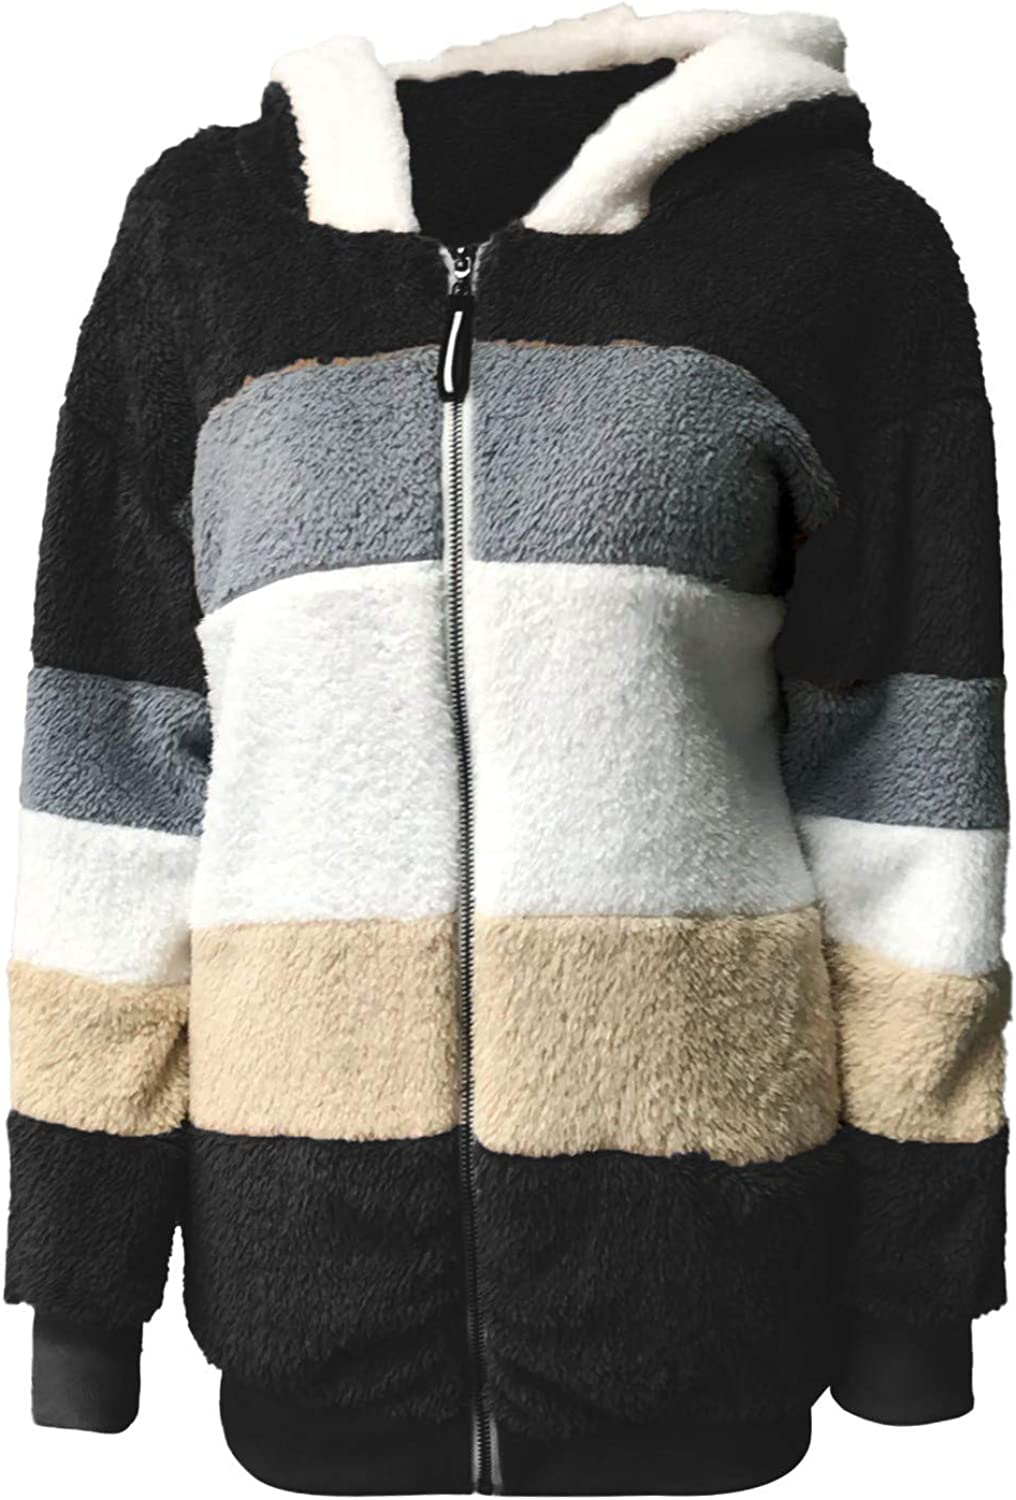 FHLZ Womens Contrasting Manmade Lamb Wool Coat Winter Loose Hooded Jacket Plush Coat with Zipper,Fashion Casual Warm Zip Jacket